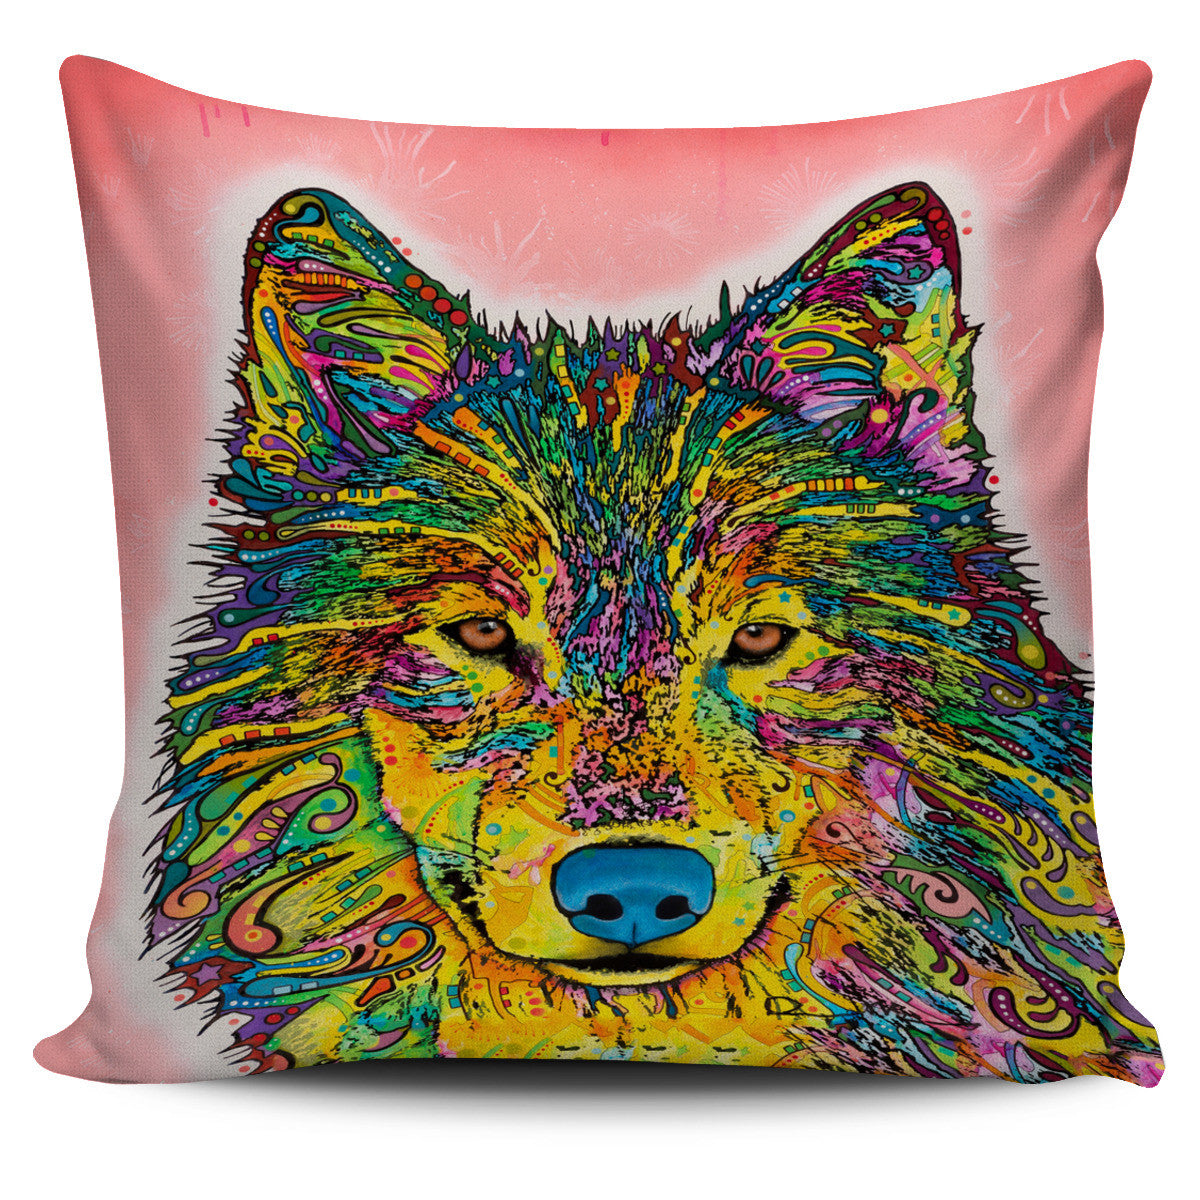 North America Series Pillow Covers